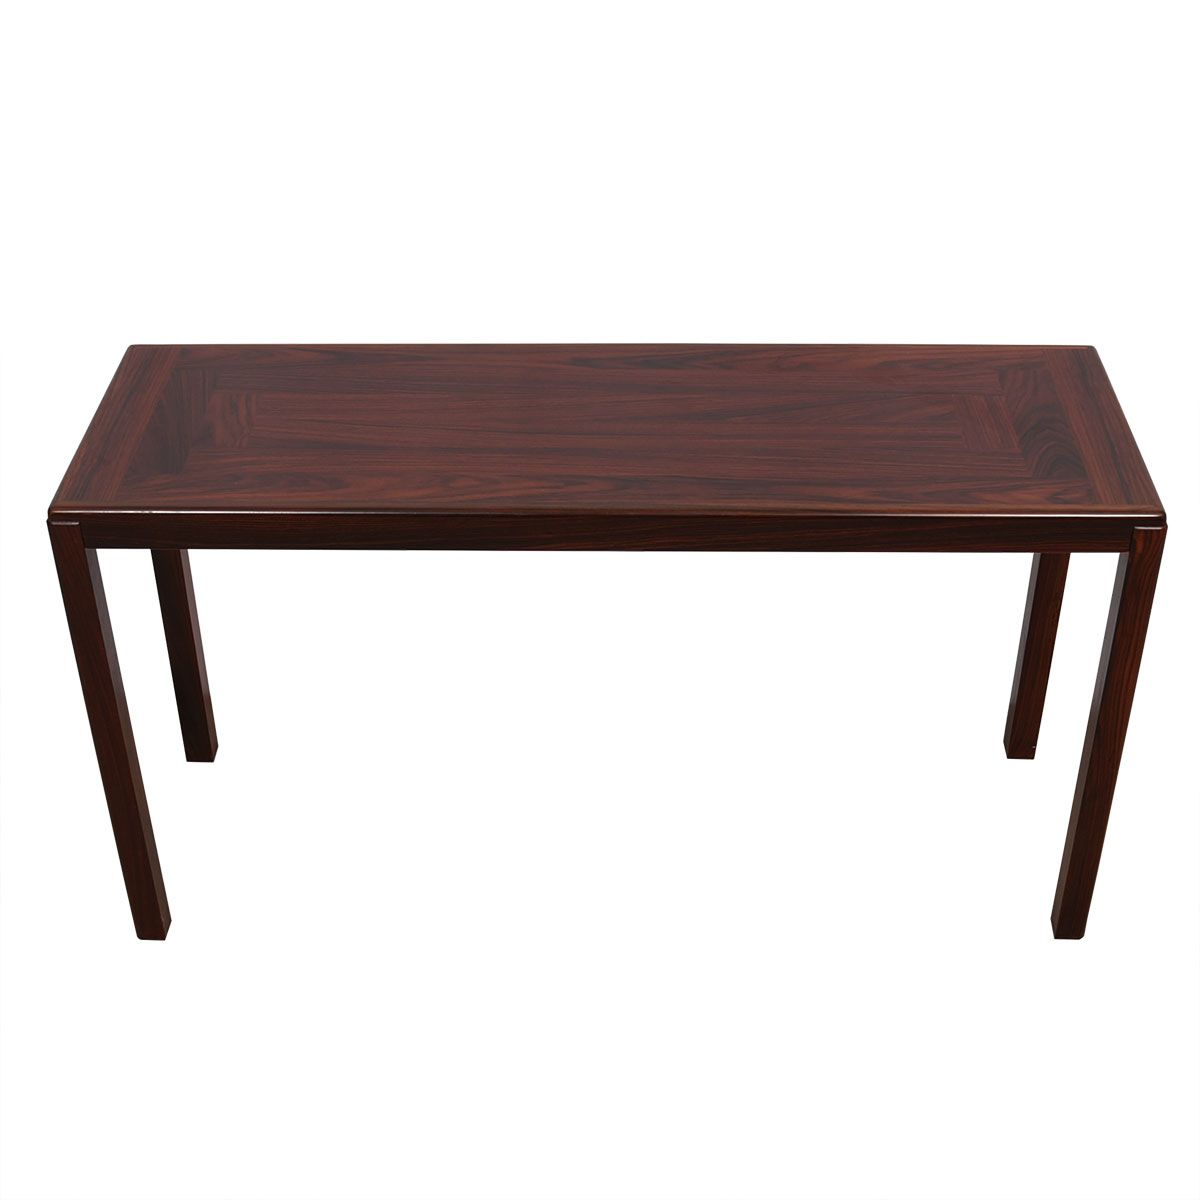 Danish Rosewood Desk / Console / Sofa Table